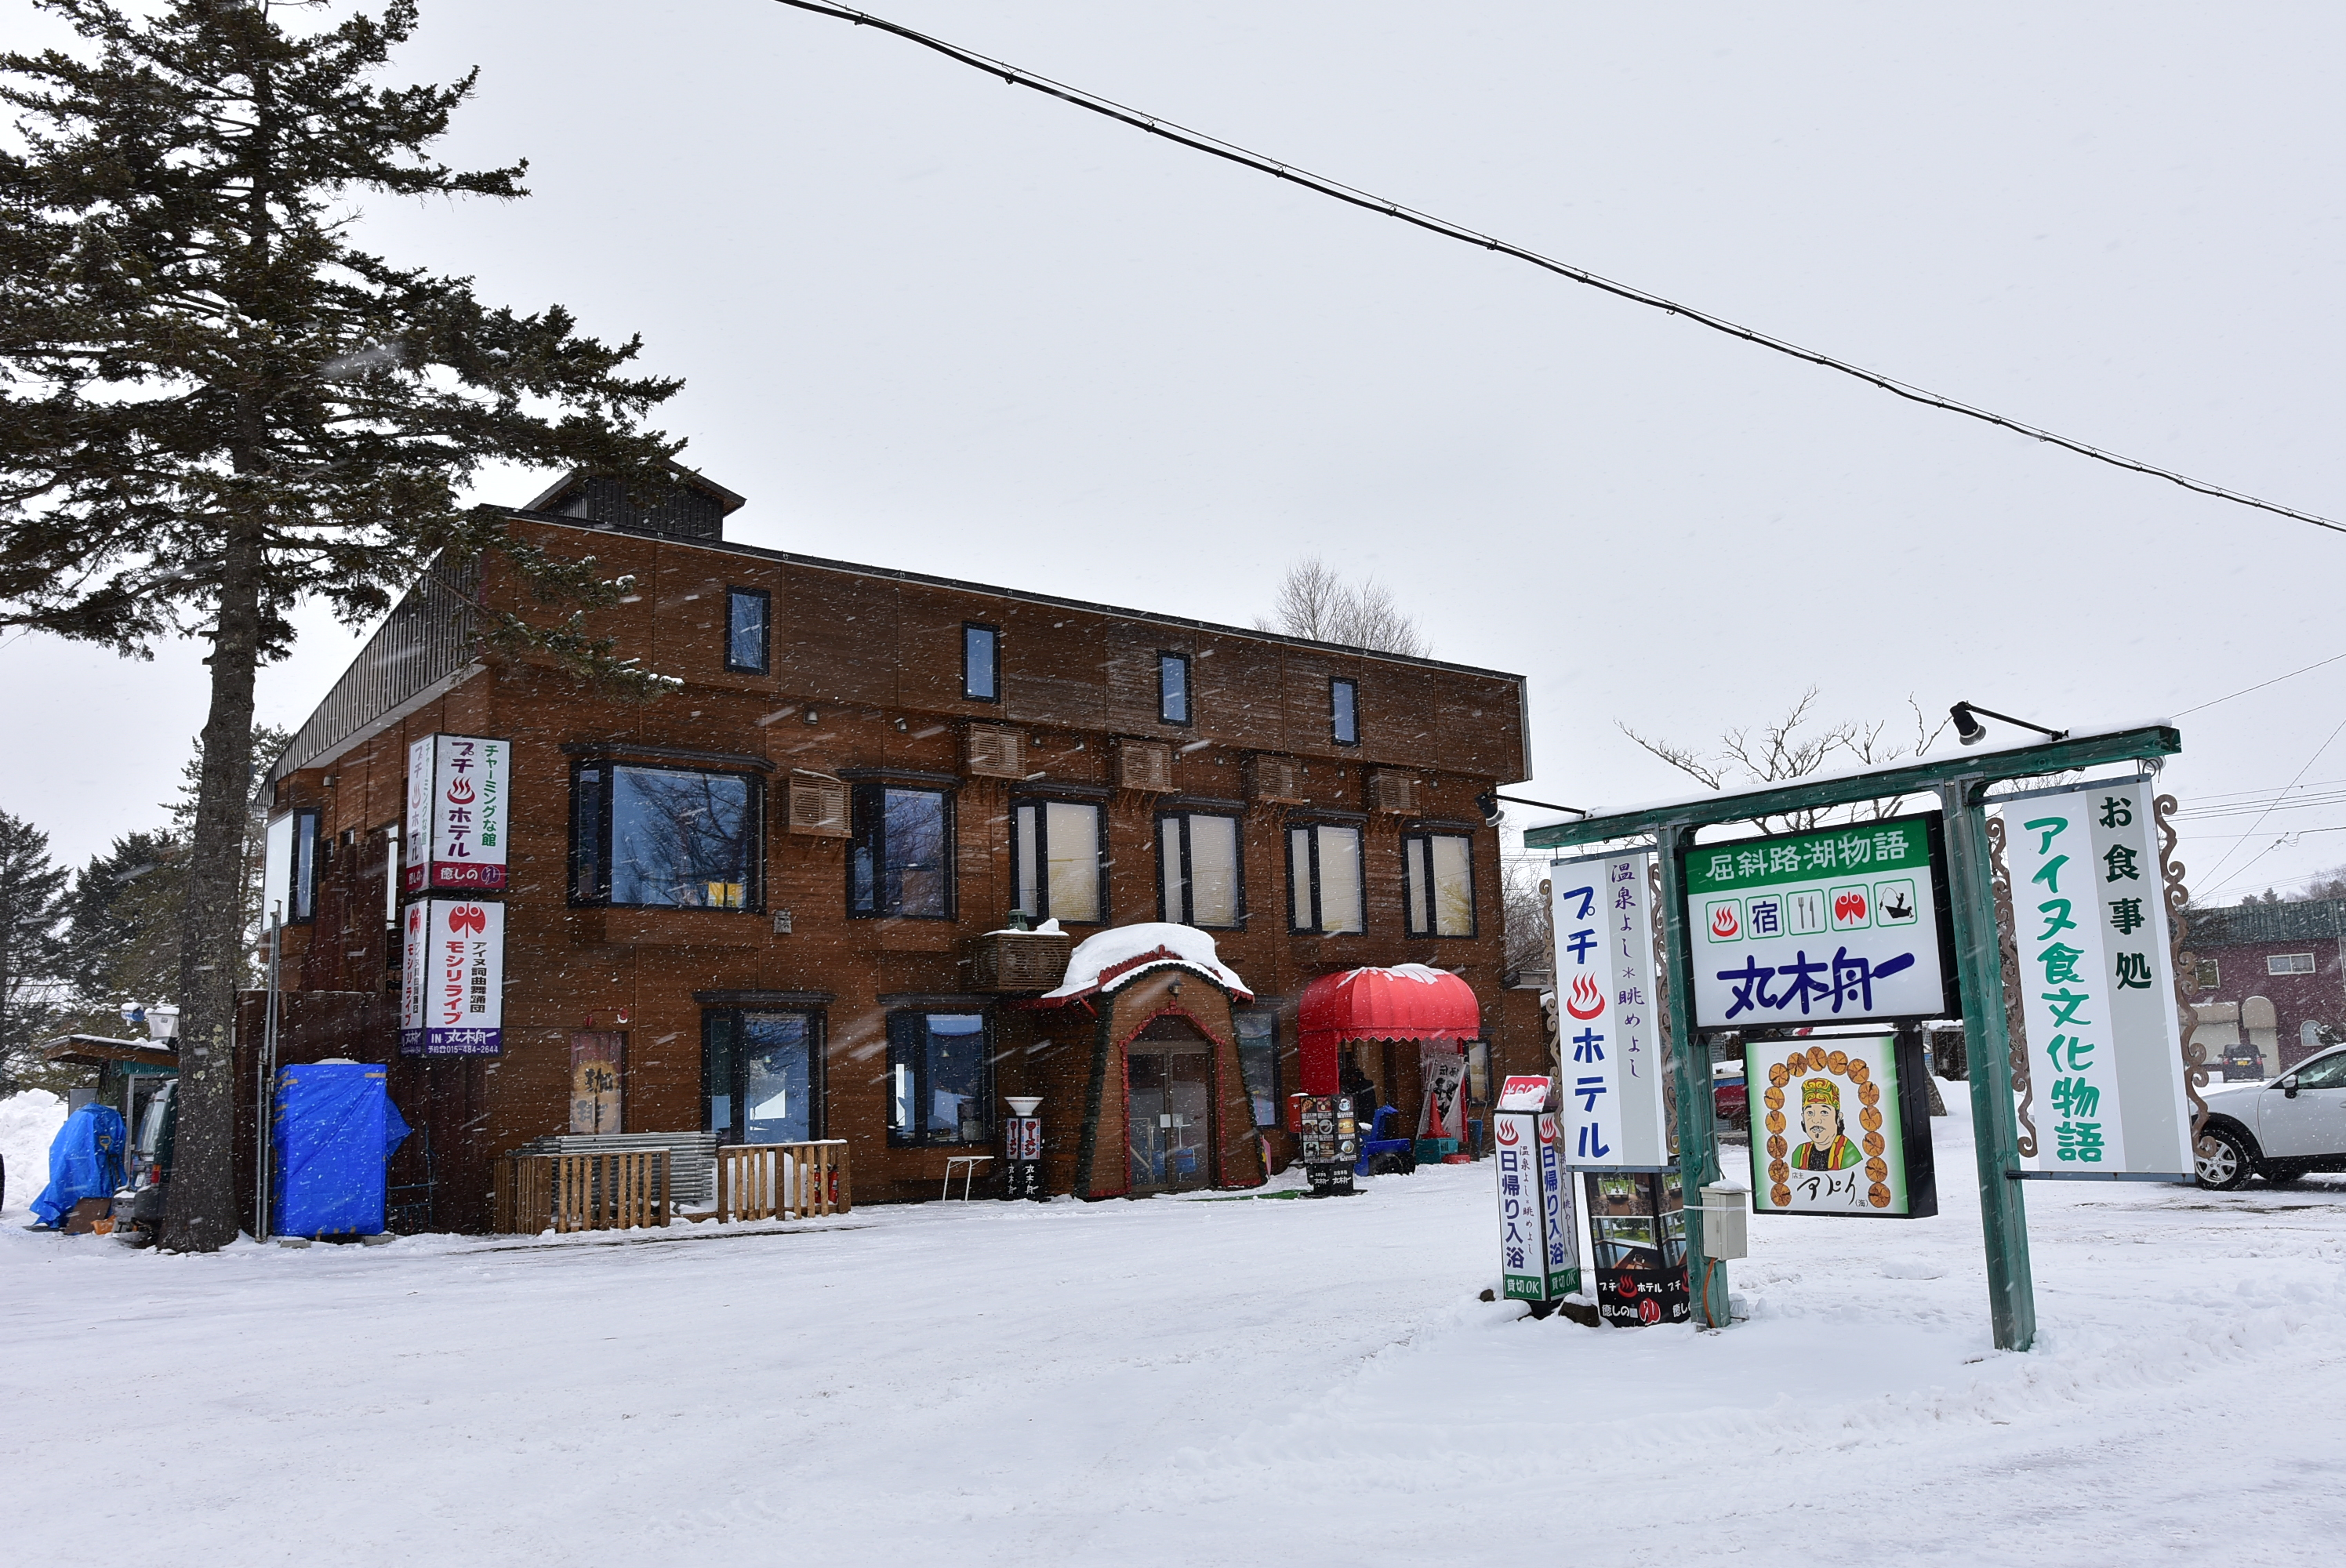 Marukibune, a hot spring inn with soul-stirring Ainu cuisine and music